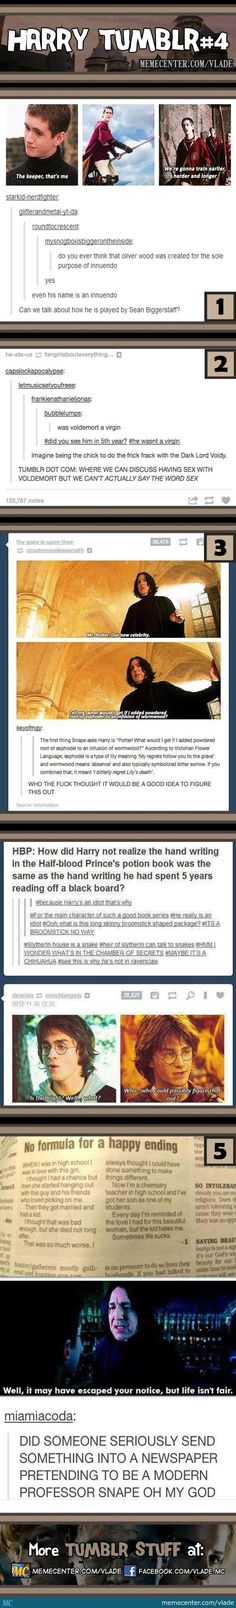 Harry Potter on tumblr: